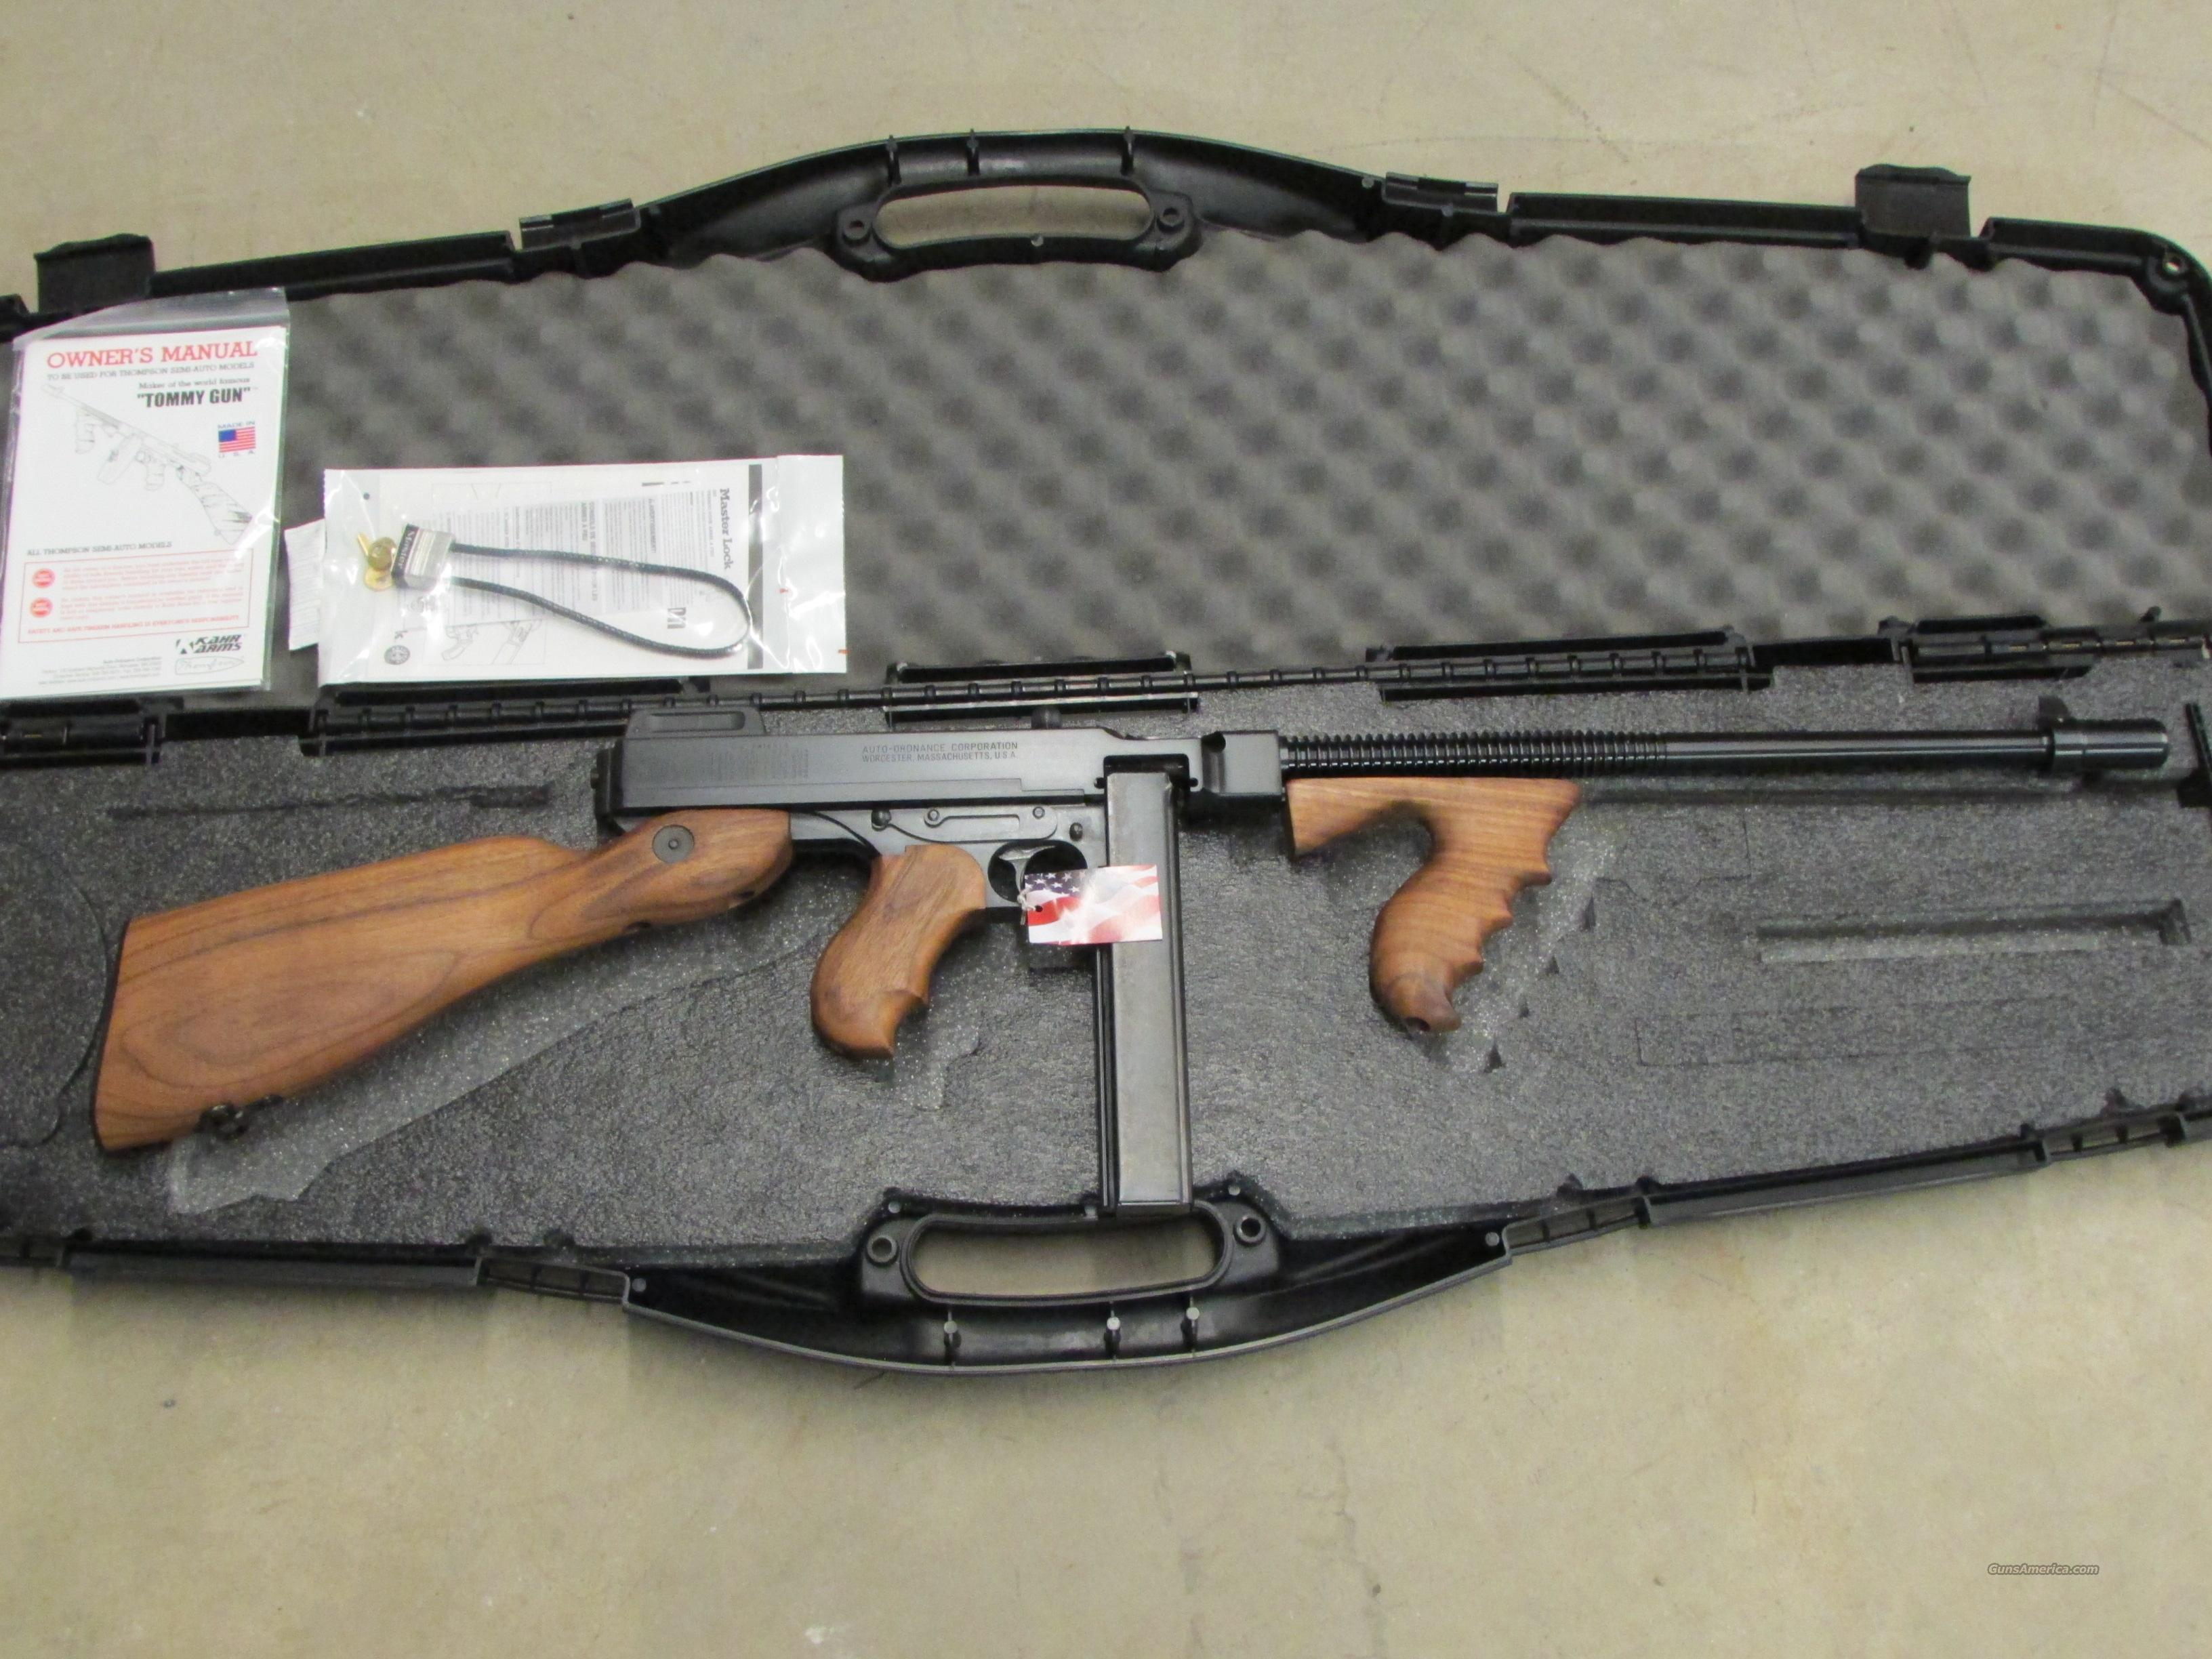 "Auto-Ordnance Thompson T1 .45 ACP Carbine 16.5""  Guns > Rifles > Thompson Subguns/Semi-Auto"